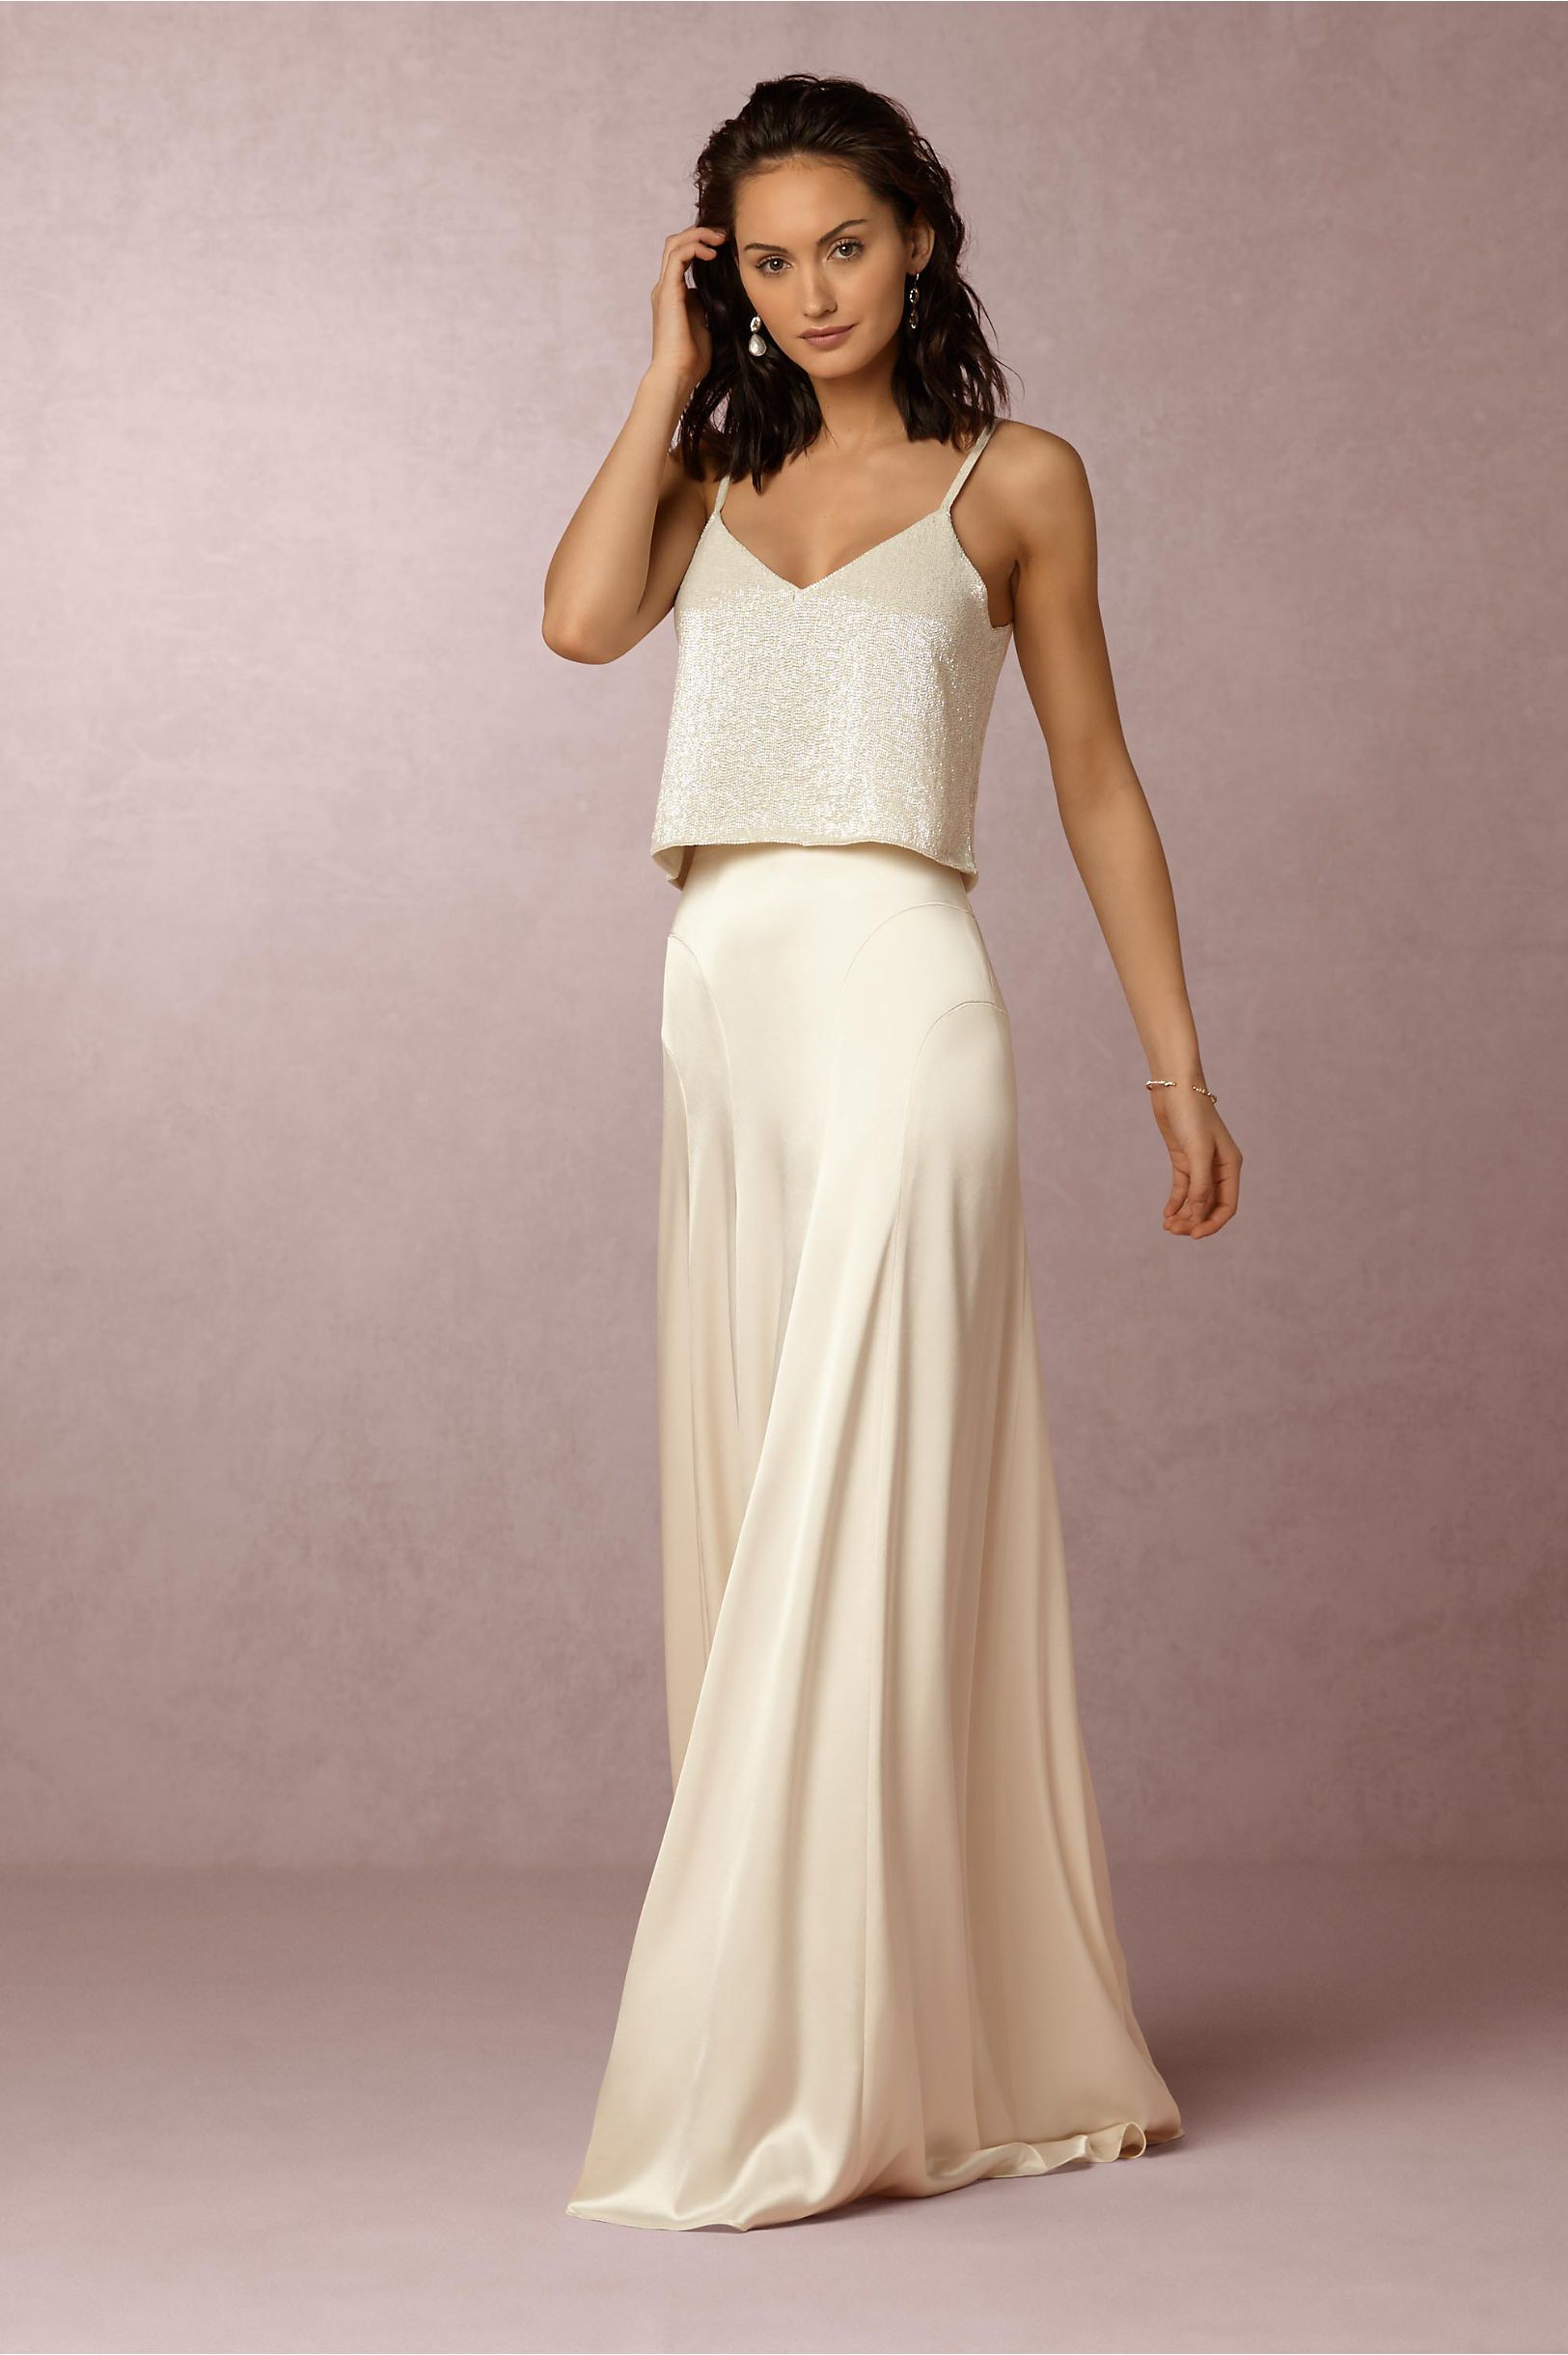 Francine Top | Wedding, Skirts and Engagement parties